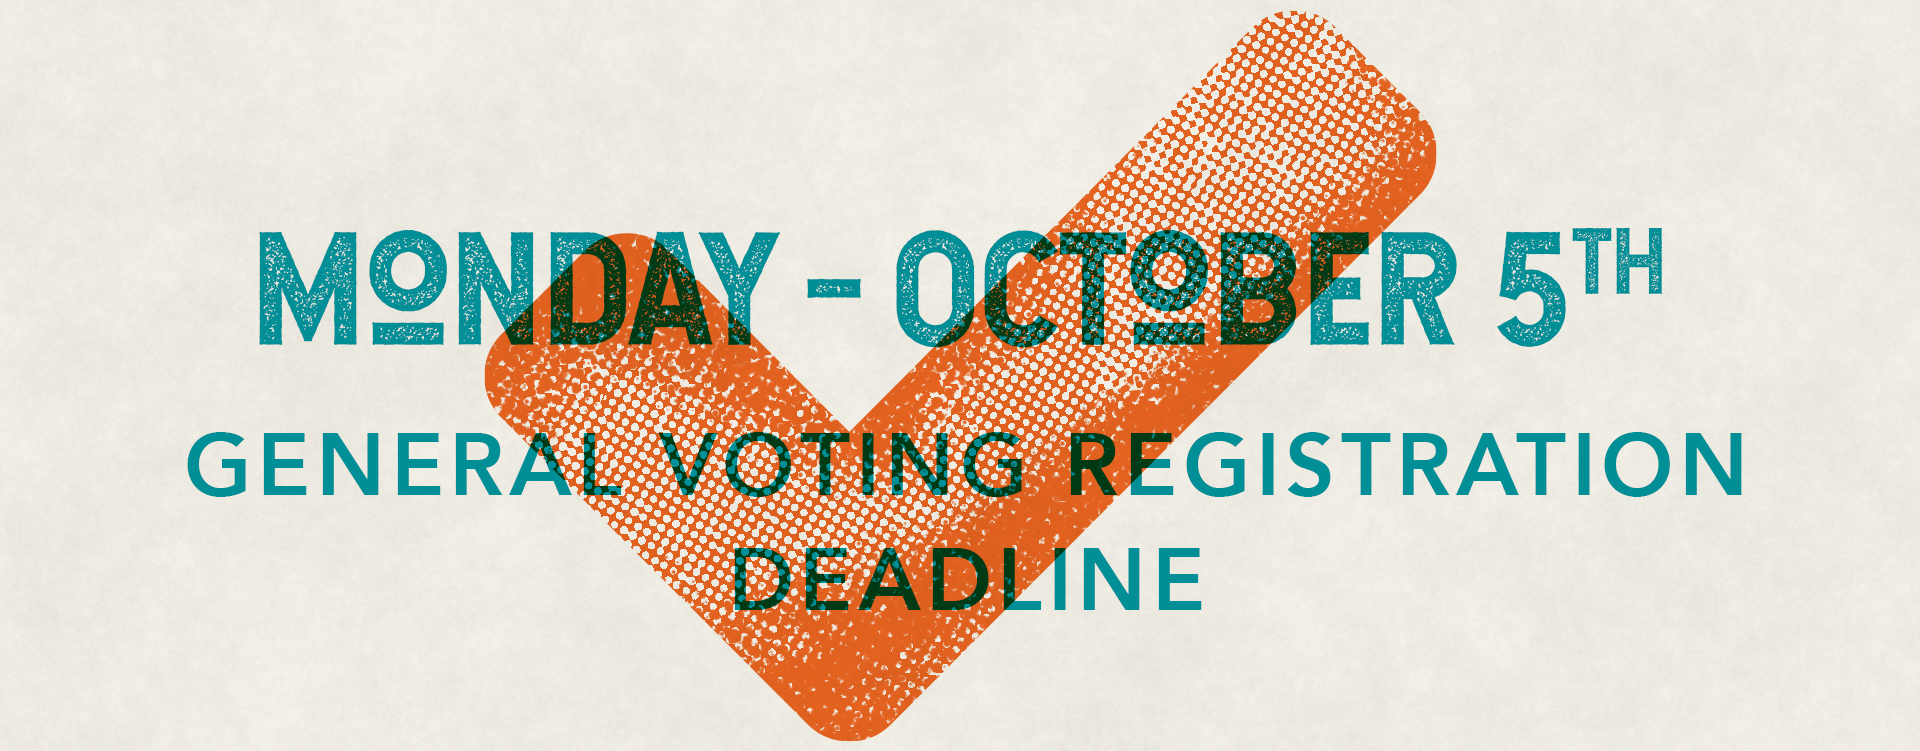 Graphic: Important Voting Date - Monday, October 5th General Coting Registration Deadline